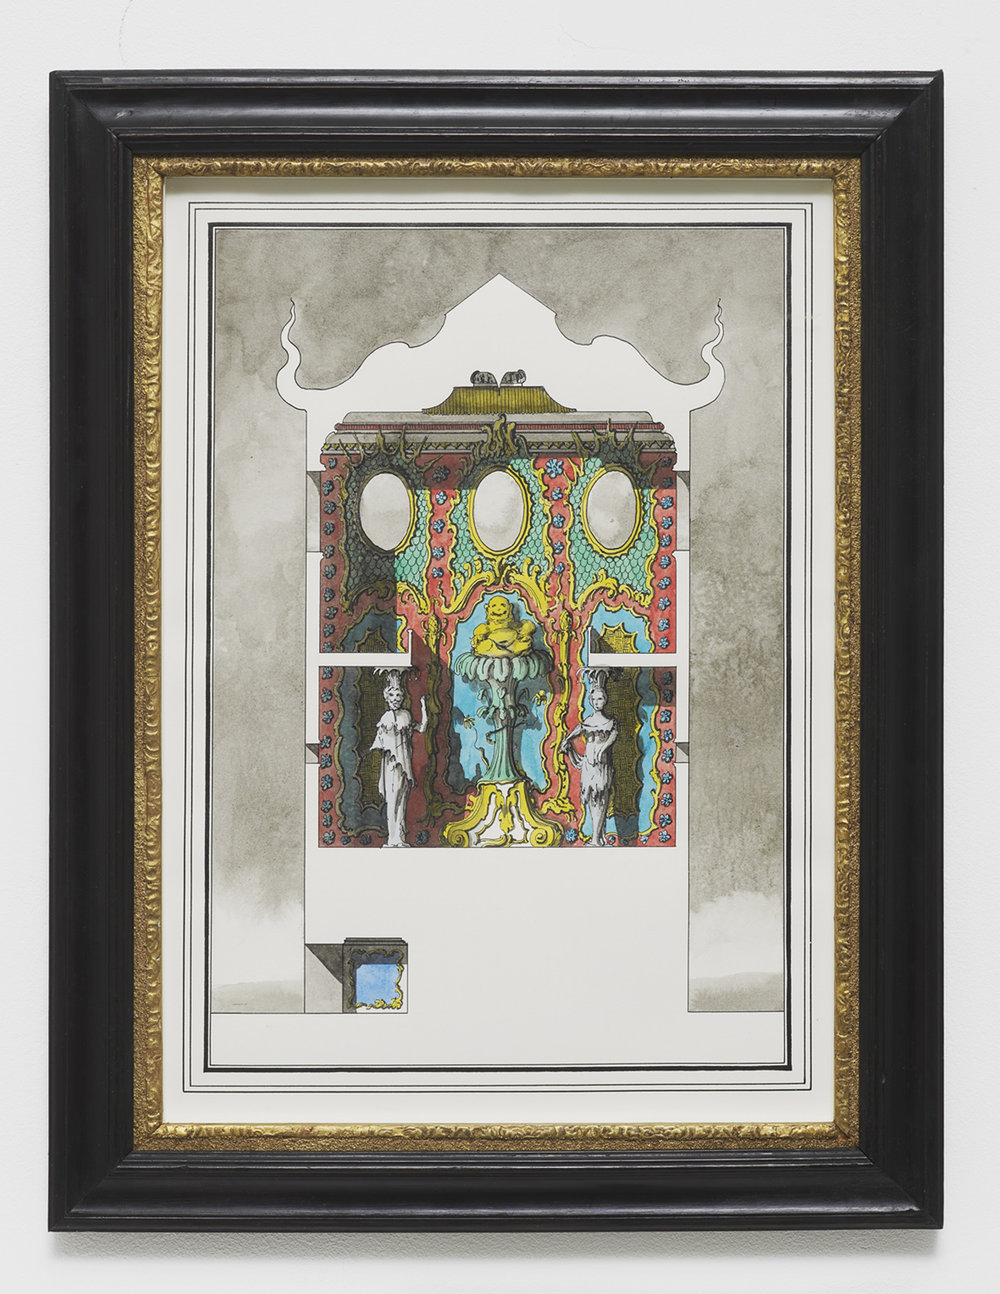 Two-storey, two room pavilion in the Oriental Taste 2016 Ink and watercolour on paper 45.2 x 34.8 cm / 17.7 x 13.7 in (framed)